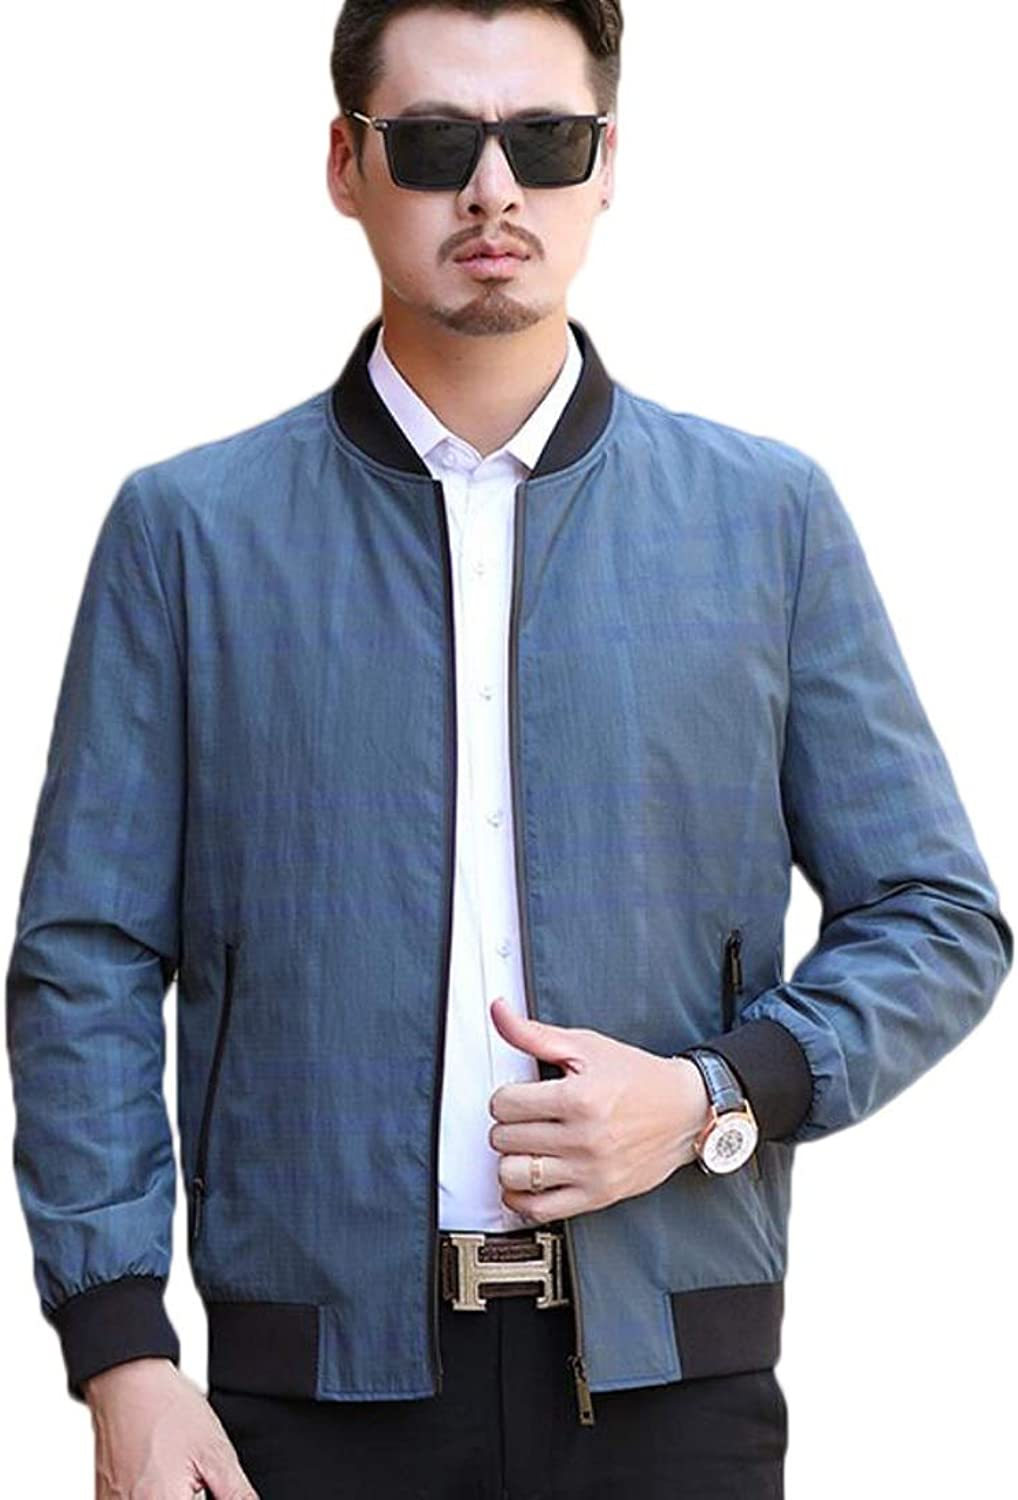 Men's Softshell Jacket Bomber Jacket Zipper Coat Spring and Autumn Coat (color   bluee 2, Size   S)